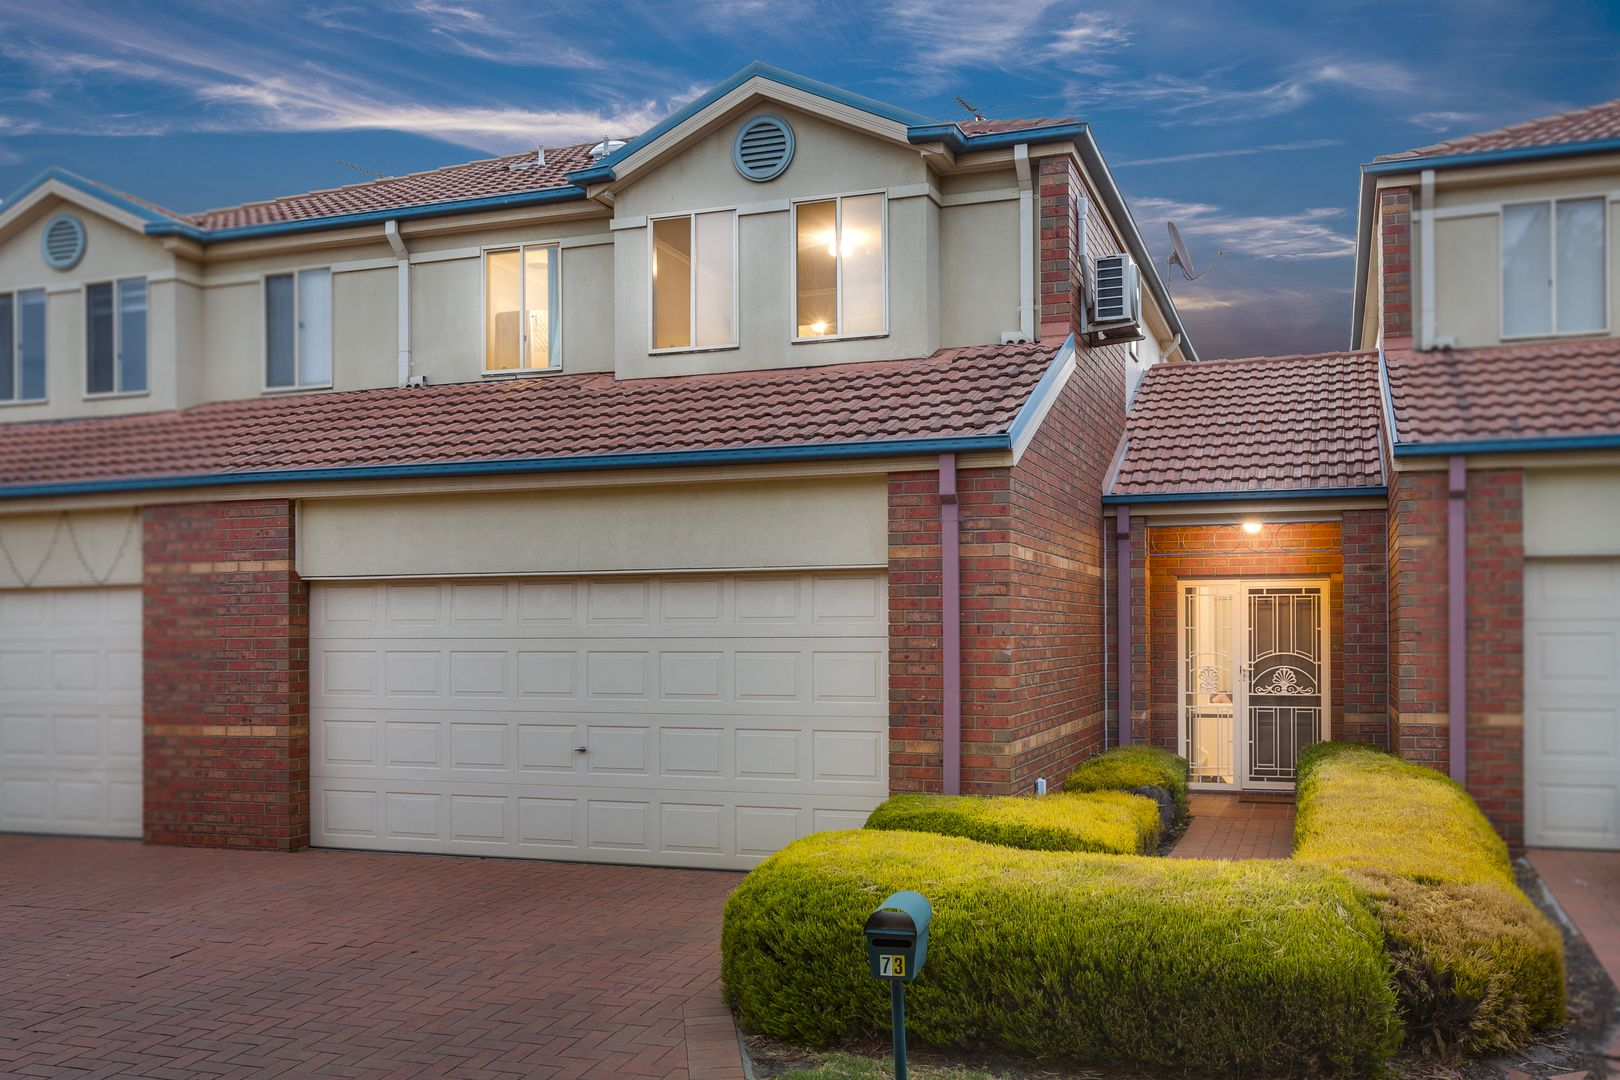 73 The Glades, Taylors Hill VIC 3037, Image 1